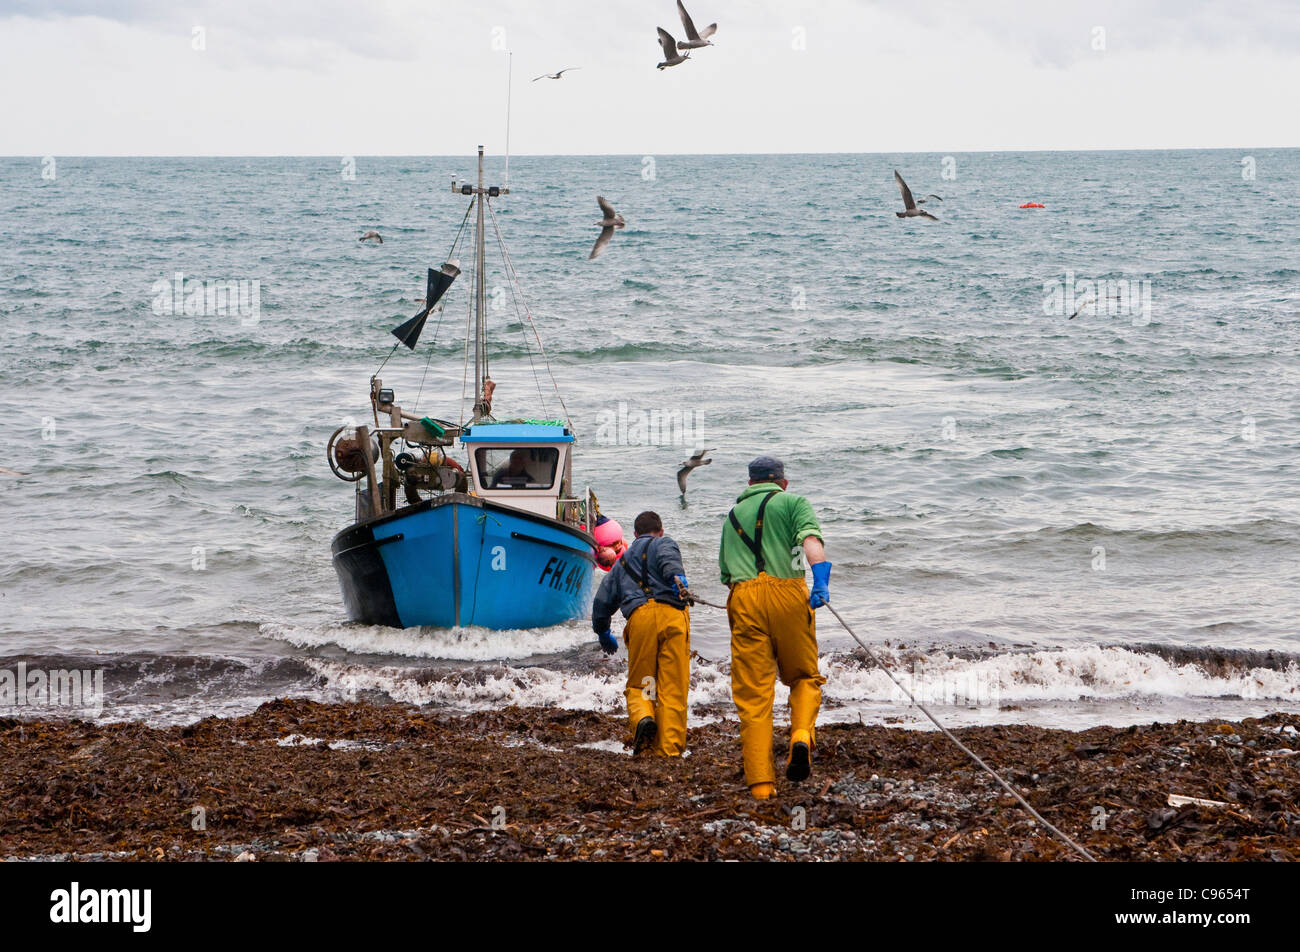 Fishermen in Cadgwith Cornwall helping in a crab fishing boat - Stock Image